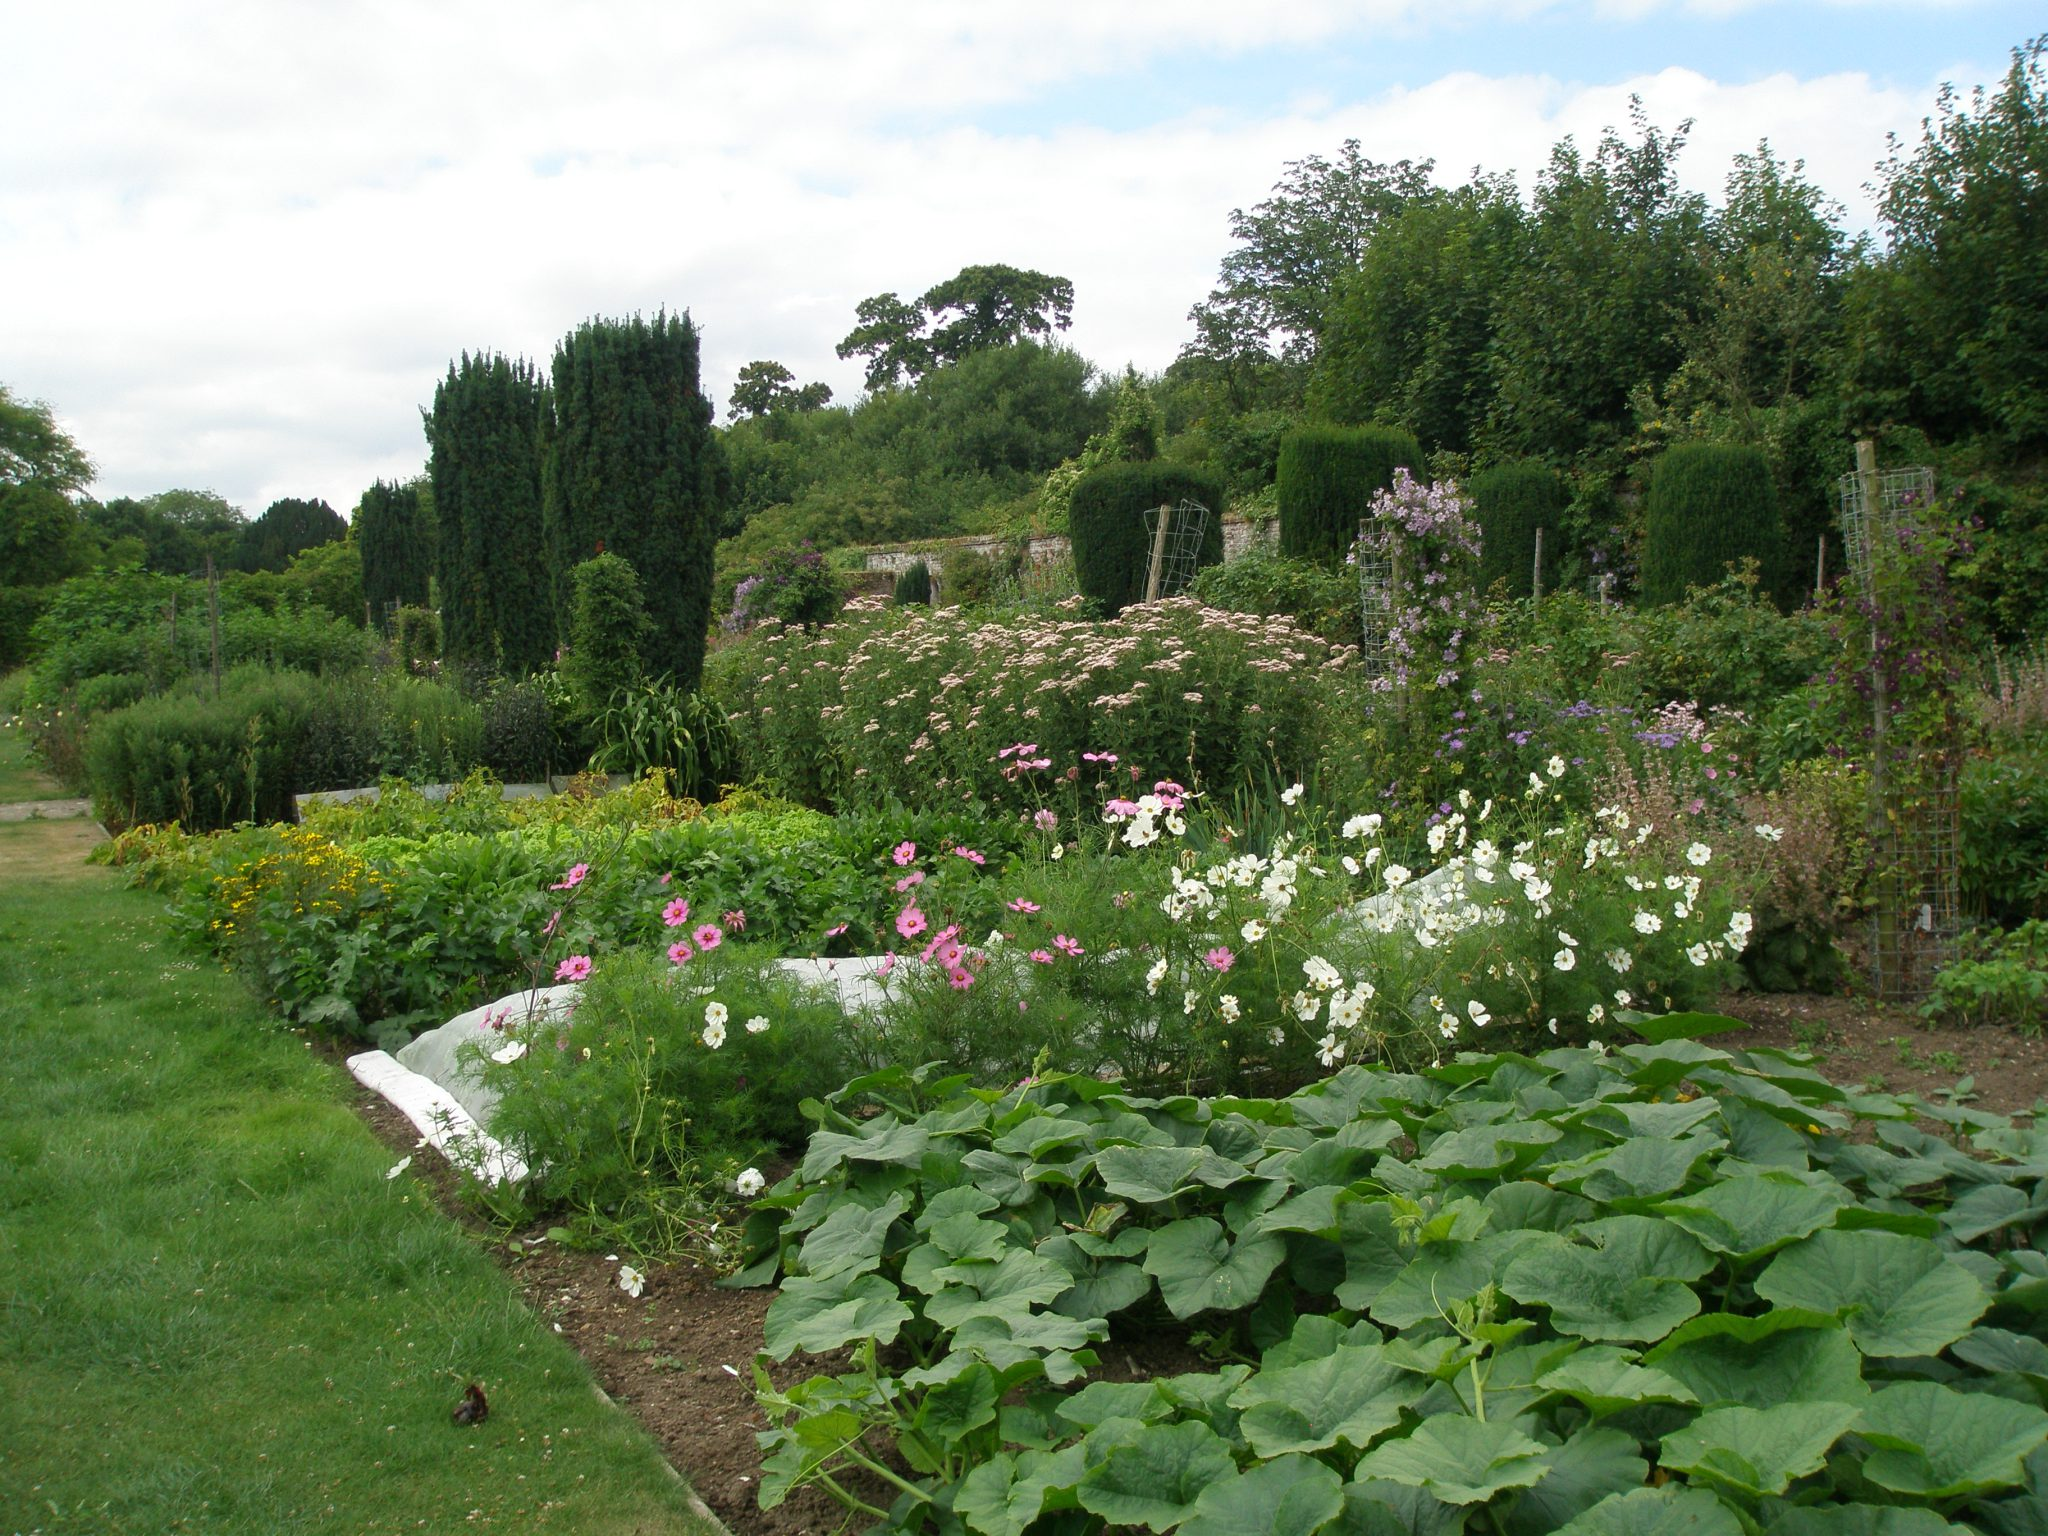 Abundant veggies and annual flowers in the beautifully-tended Walled Garden.